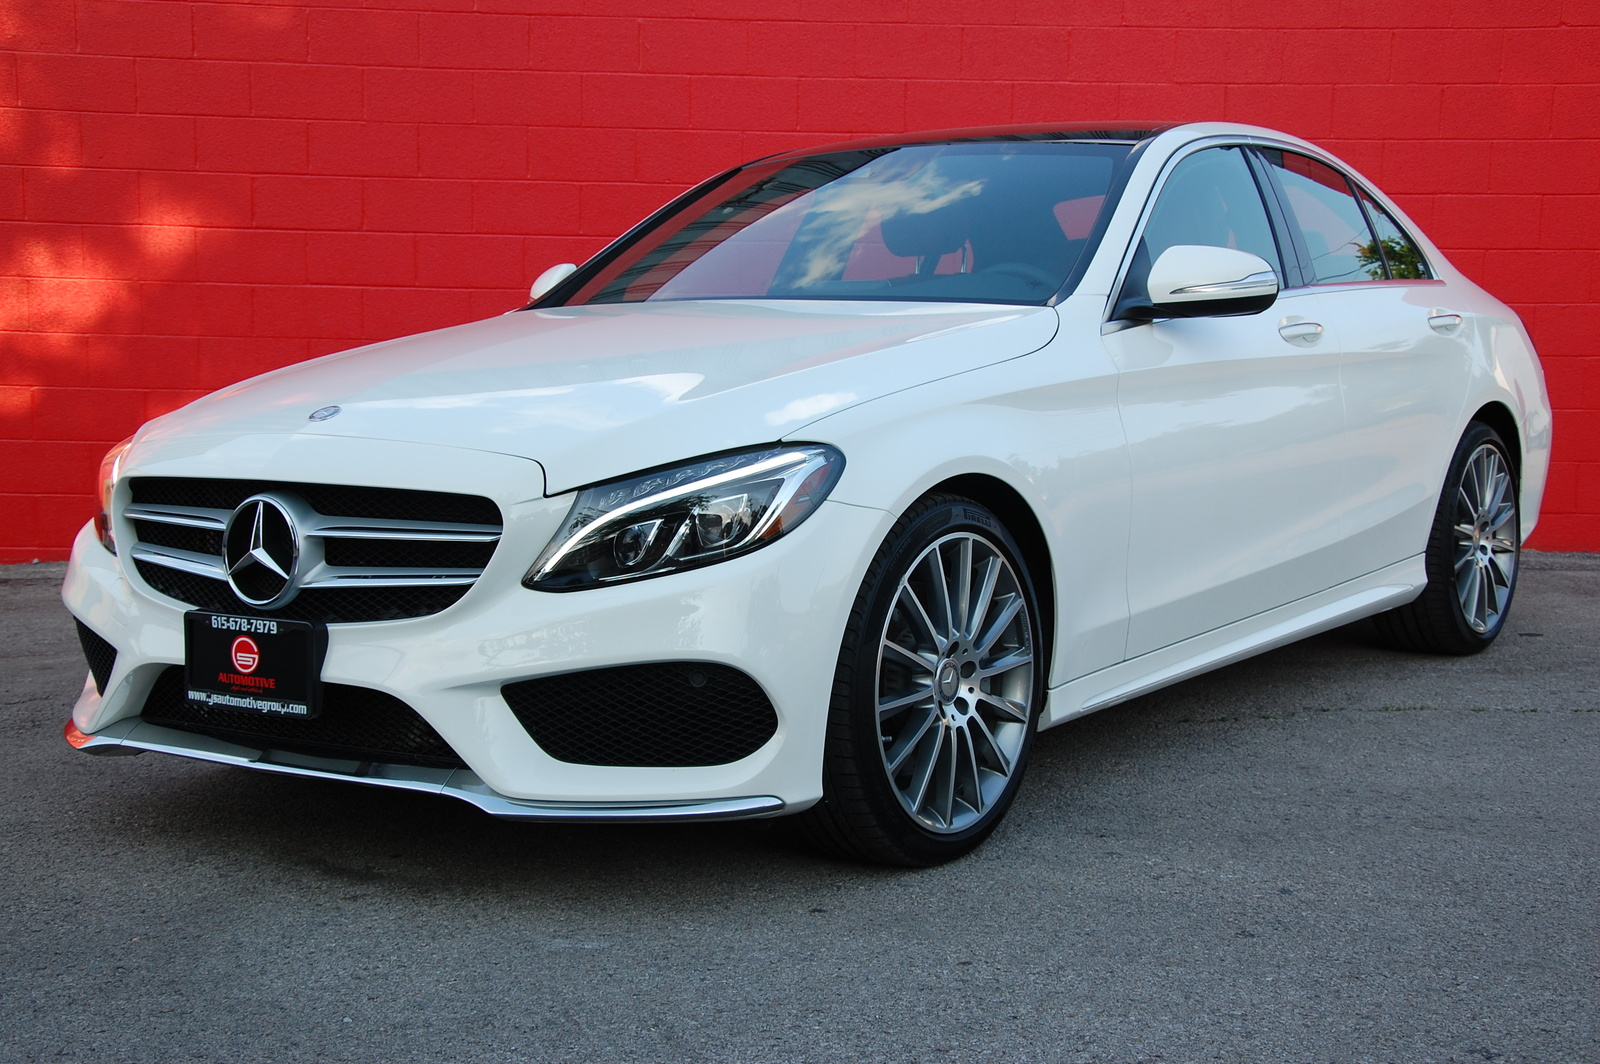 New 2014 2015 mercedes benz c class for sale cargurus for Mercedes benz average price